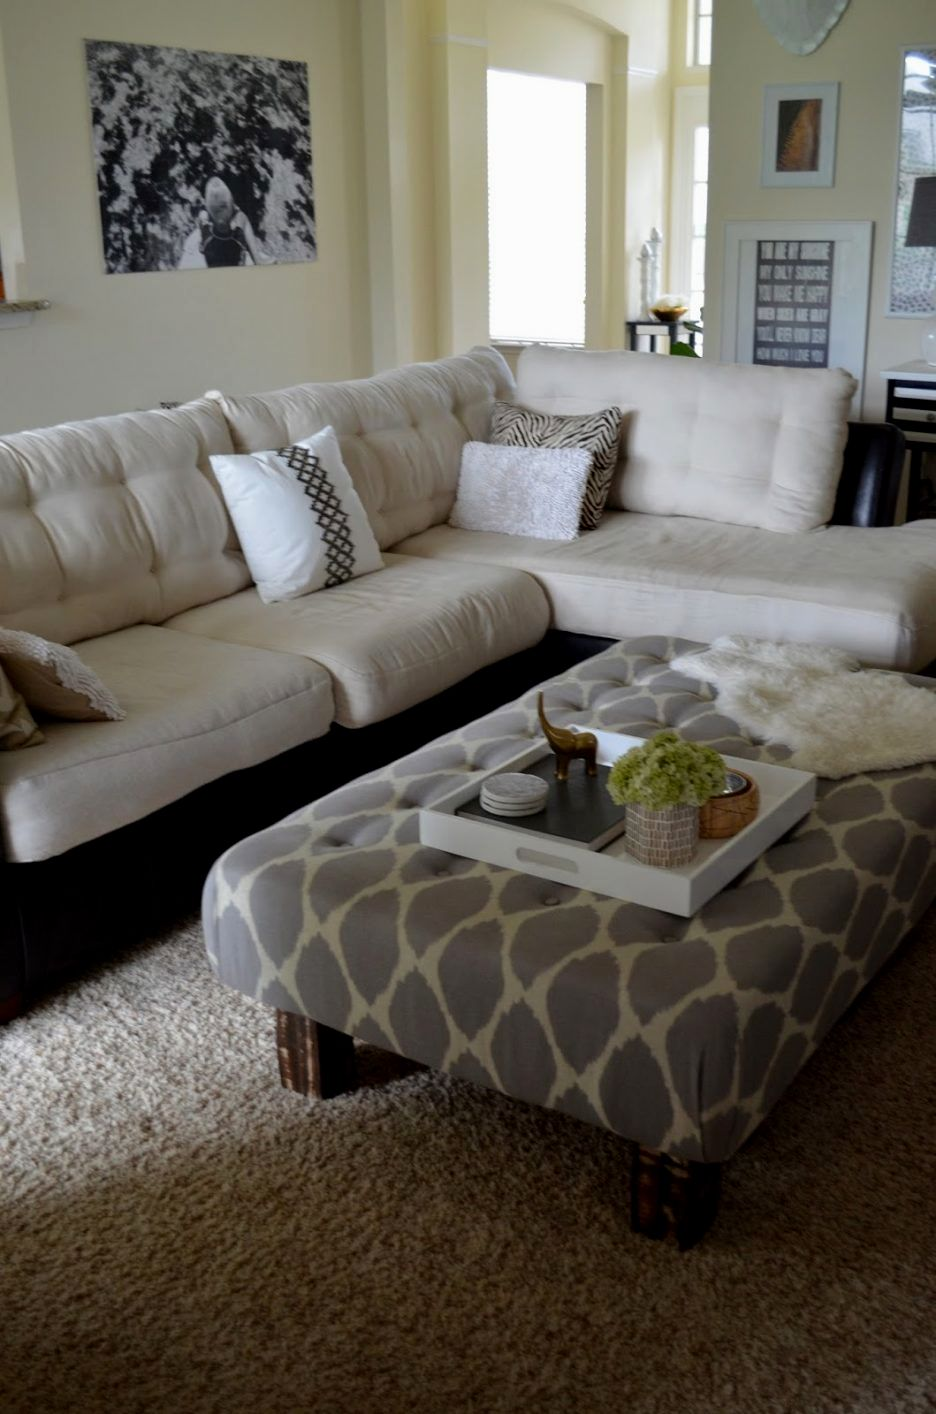 stunning sofa bed craigslist picture-Beautiful sofa Bed Craigslist Layout